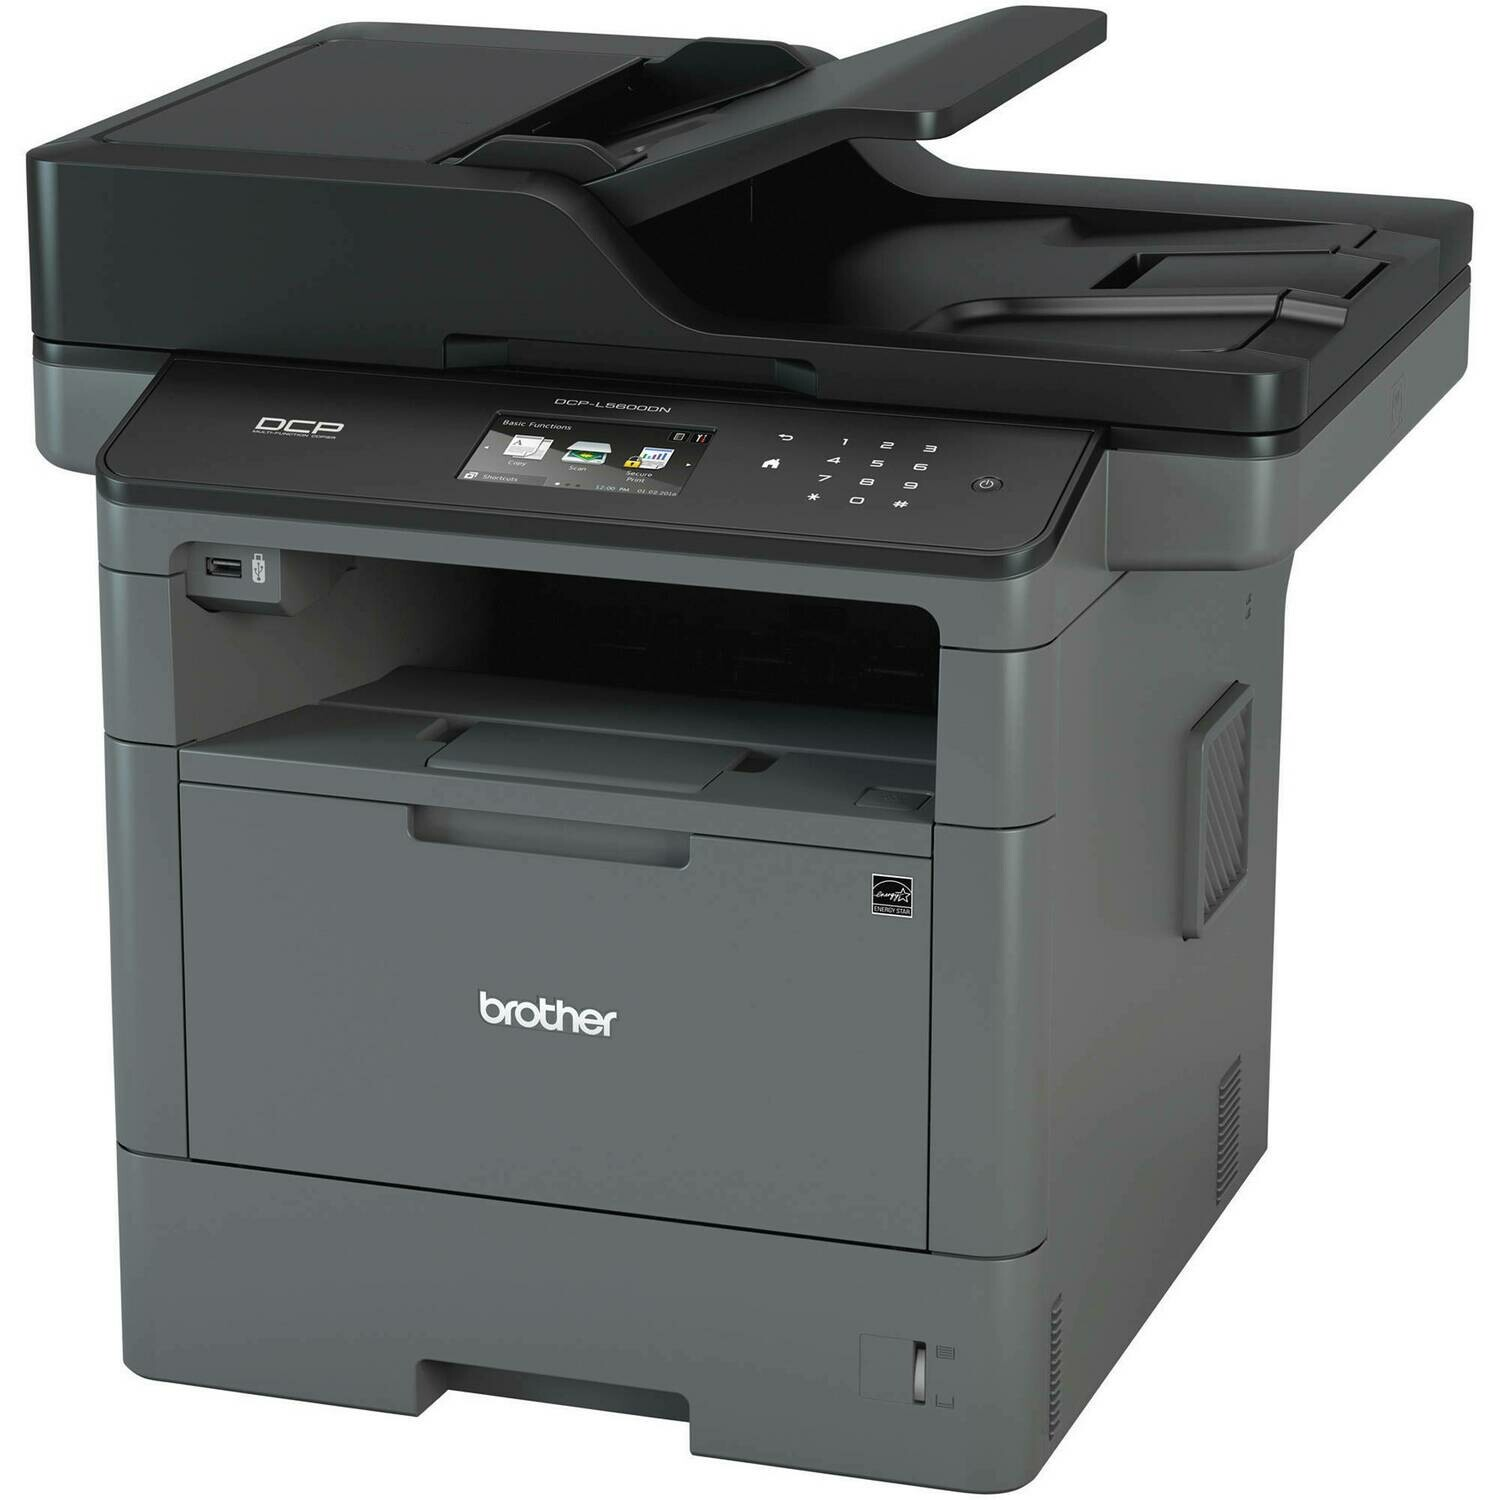 Brother DCP-L5600DN Laser Printer